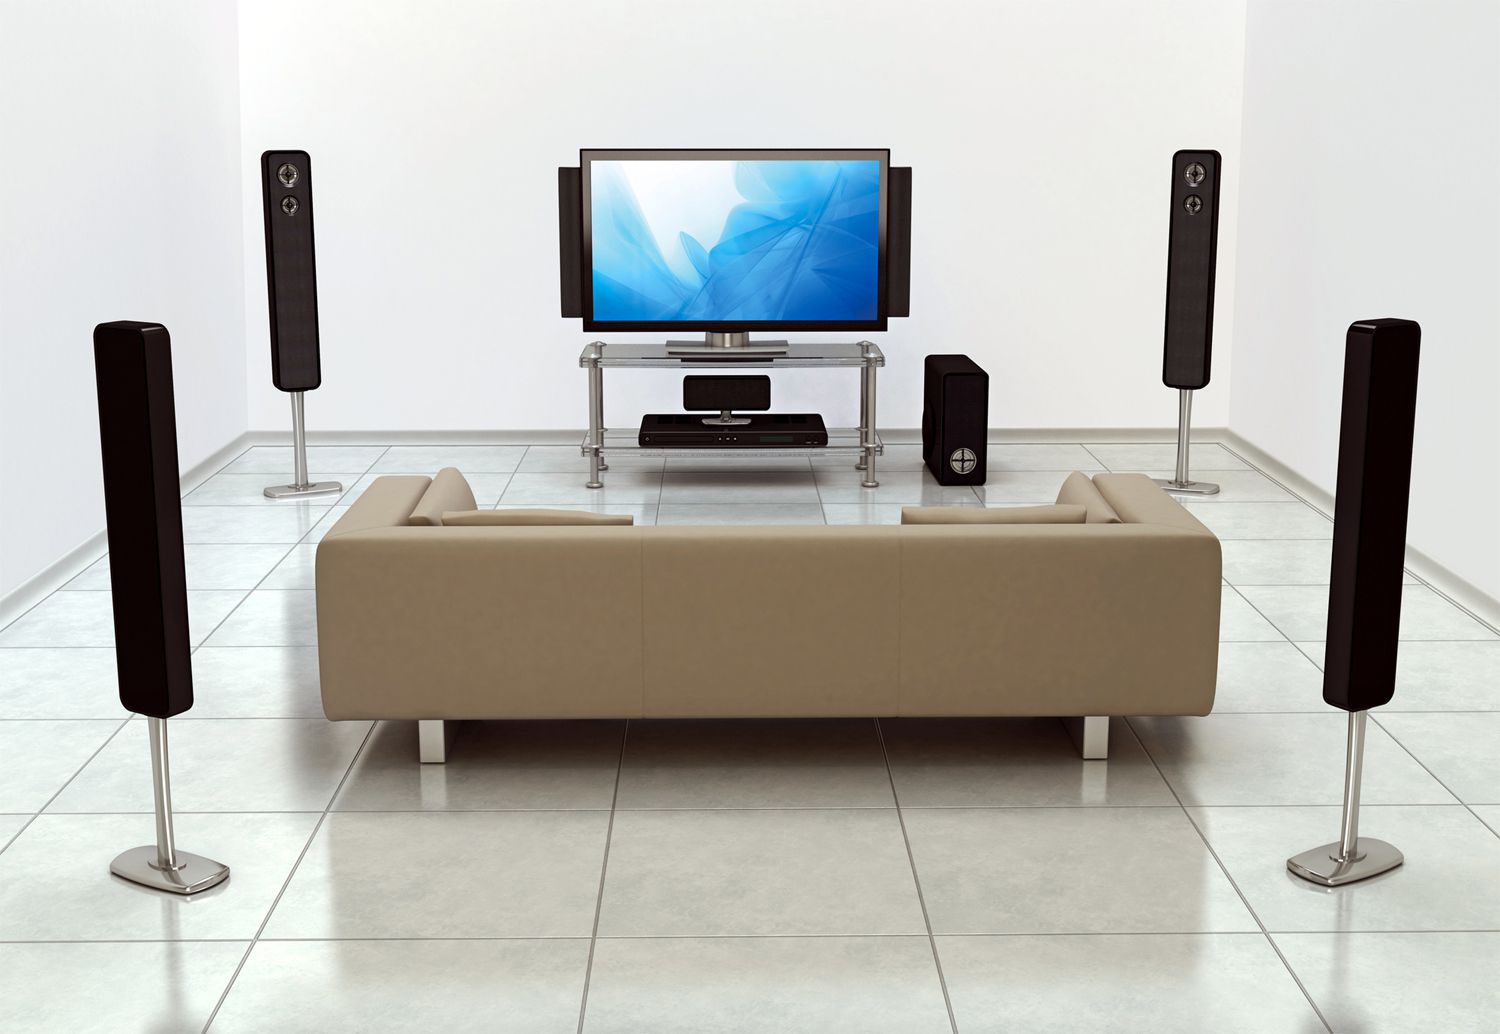 How to set up a basic home theater system - Home theater sound system design ...